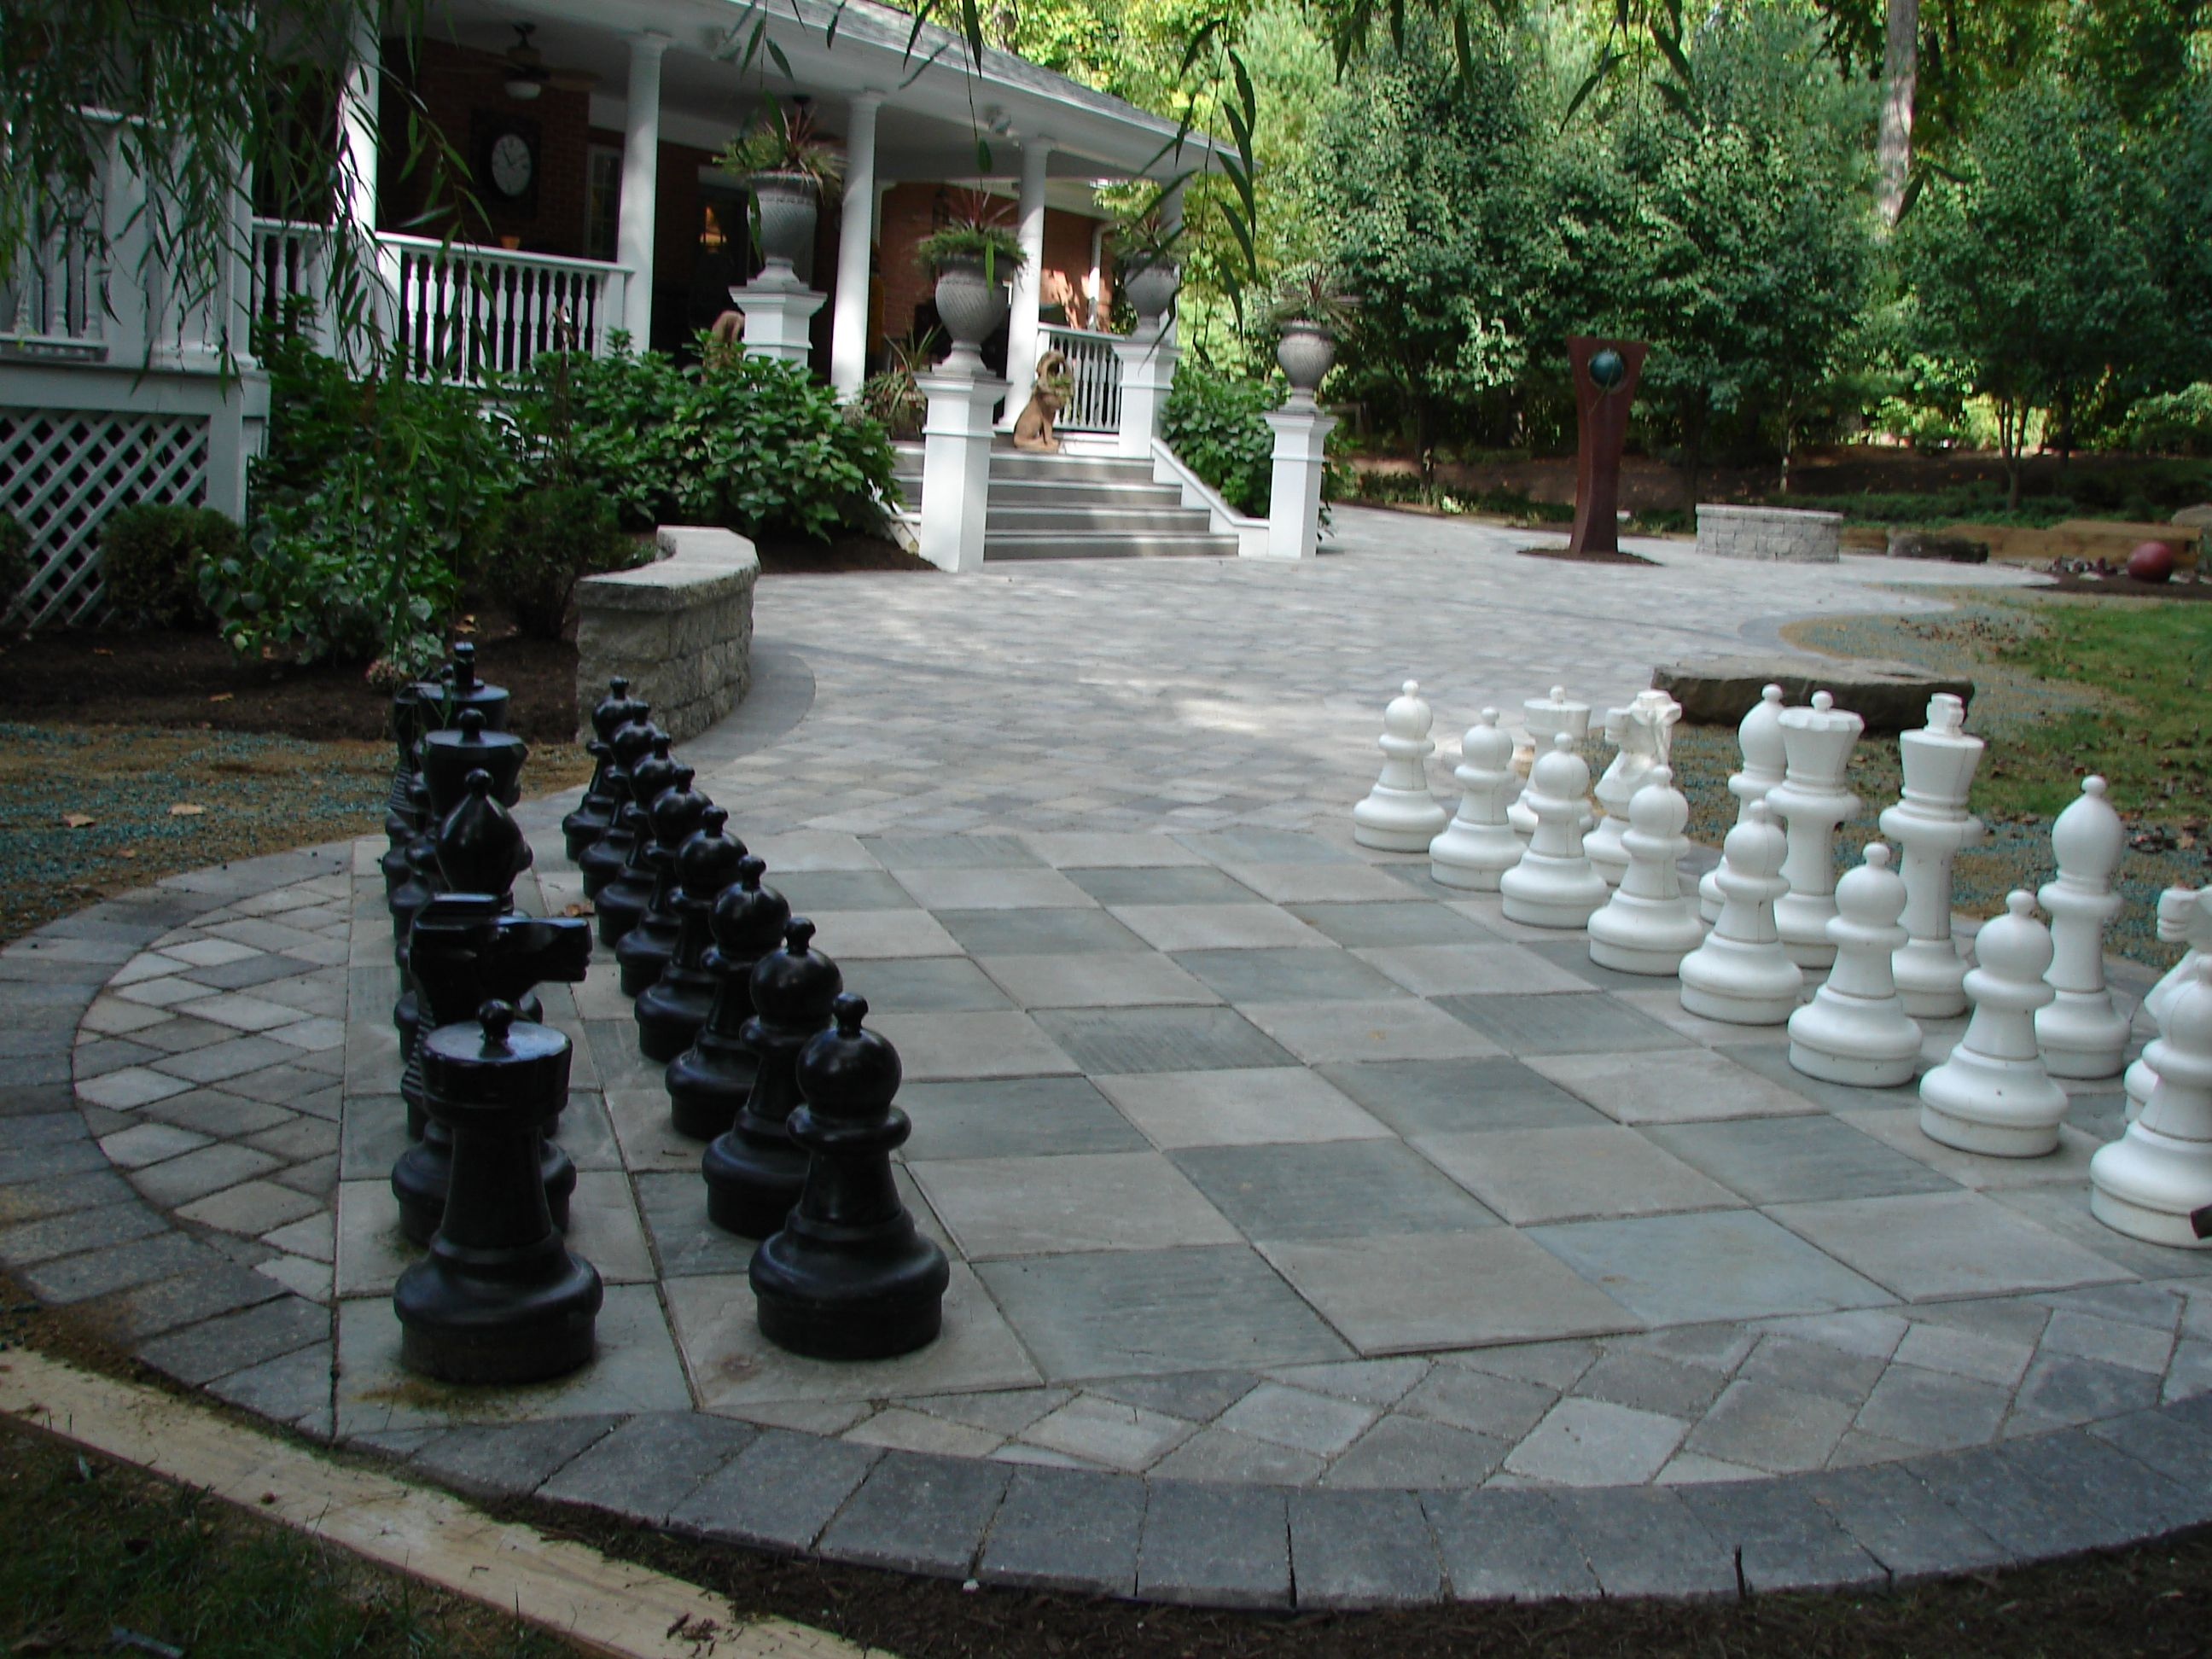 Elegant Paver Patio With Chess Set